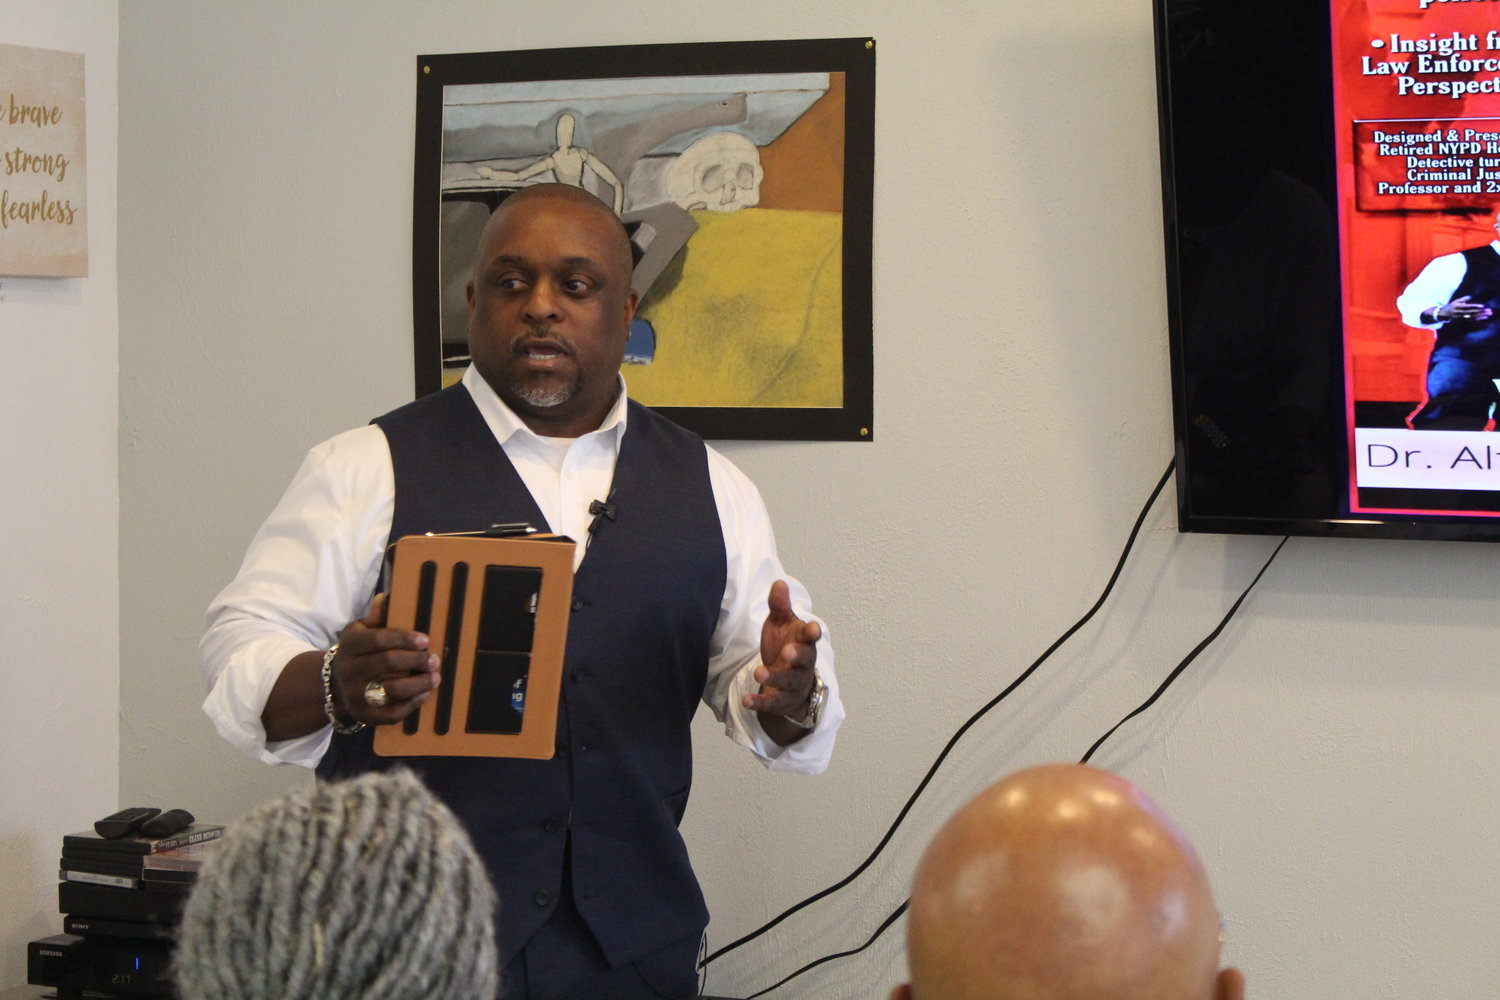 Dr. Alfred Titus, a former New York City Police Department homicide detective and hostage negotiator who is now an author and professor, shared tips on how to safely interact with police at an informational seminar on June 30 at 3D's Community Empowerment Center in Baldwin.